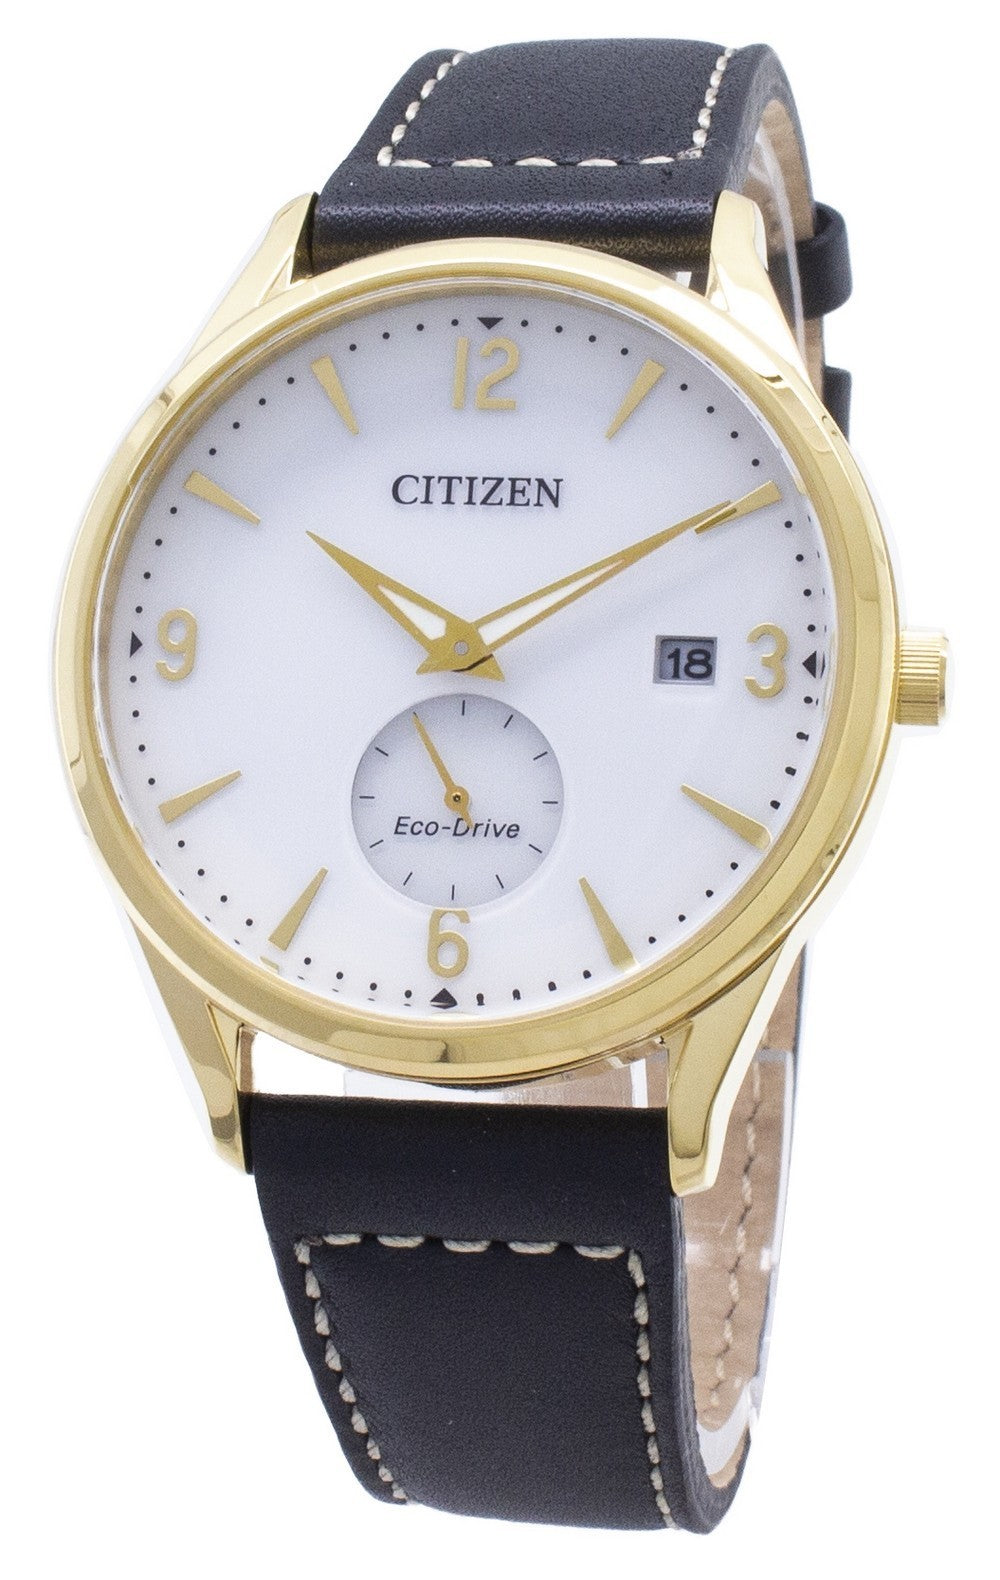 Citizen Eco-drive Bv1118-17a Analog Men's Watch